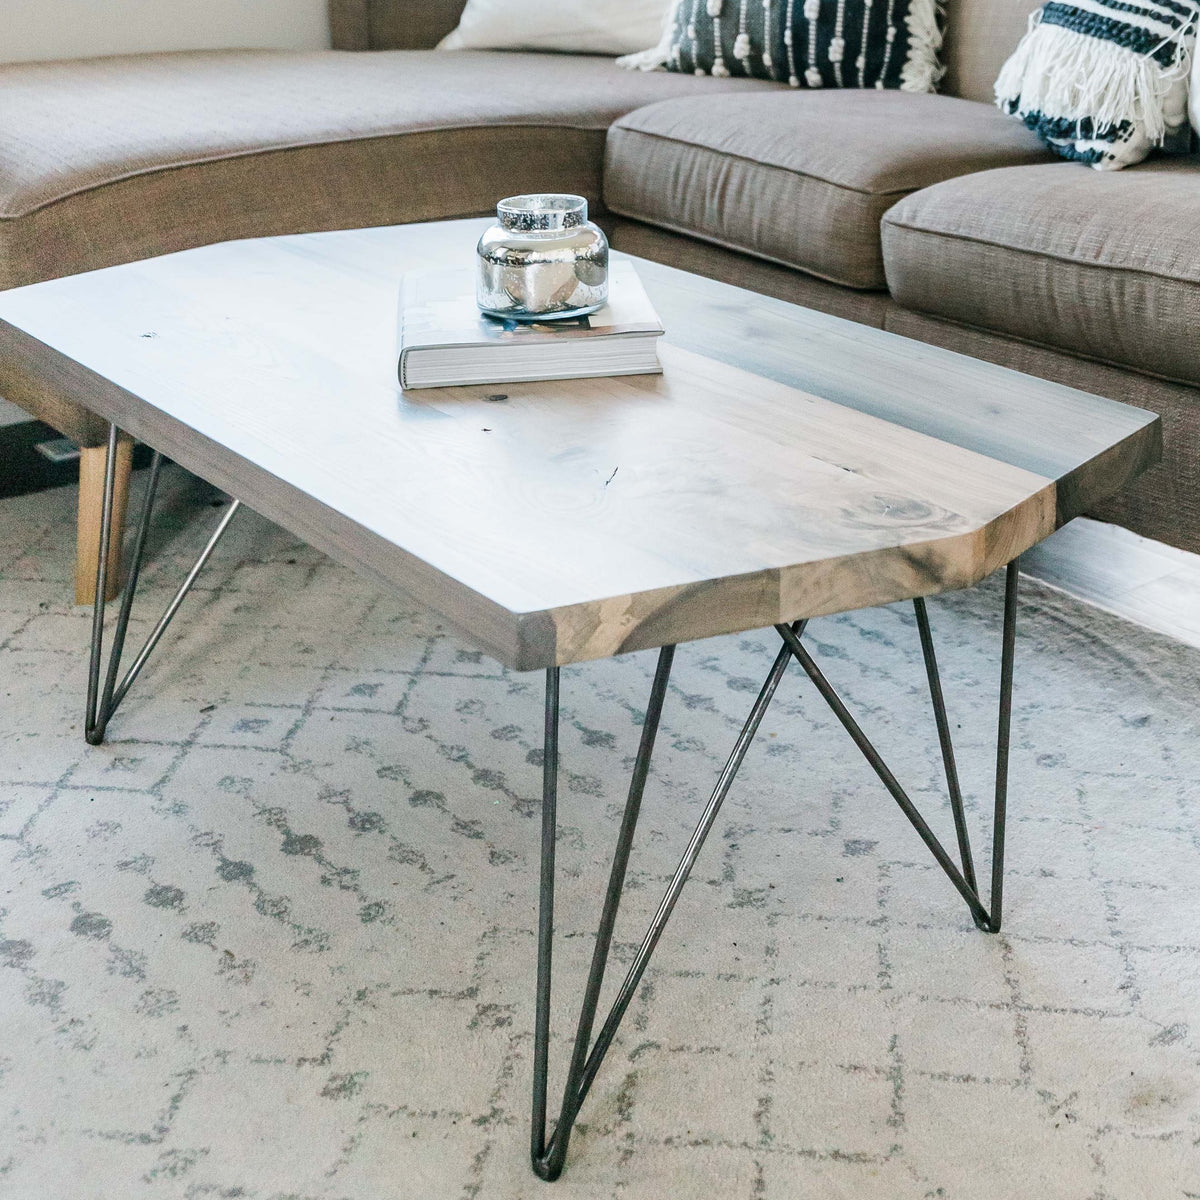 Modern Wood Coffee Table With Hairpin Legs - Dakota Timber Co. - Made in USA